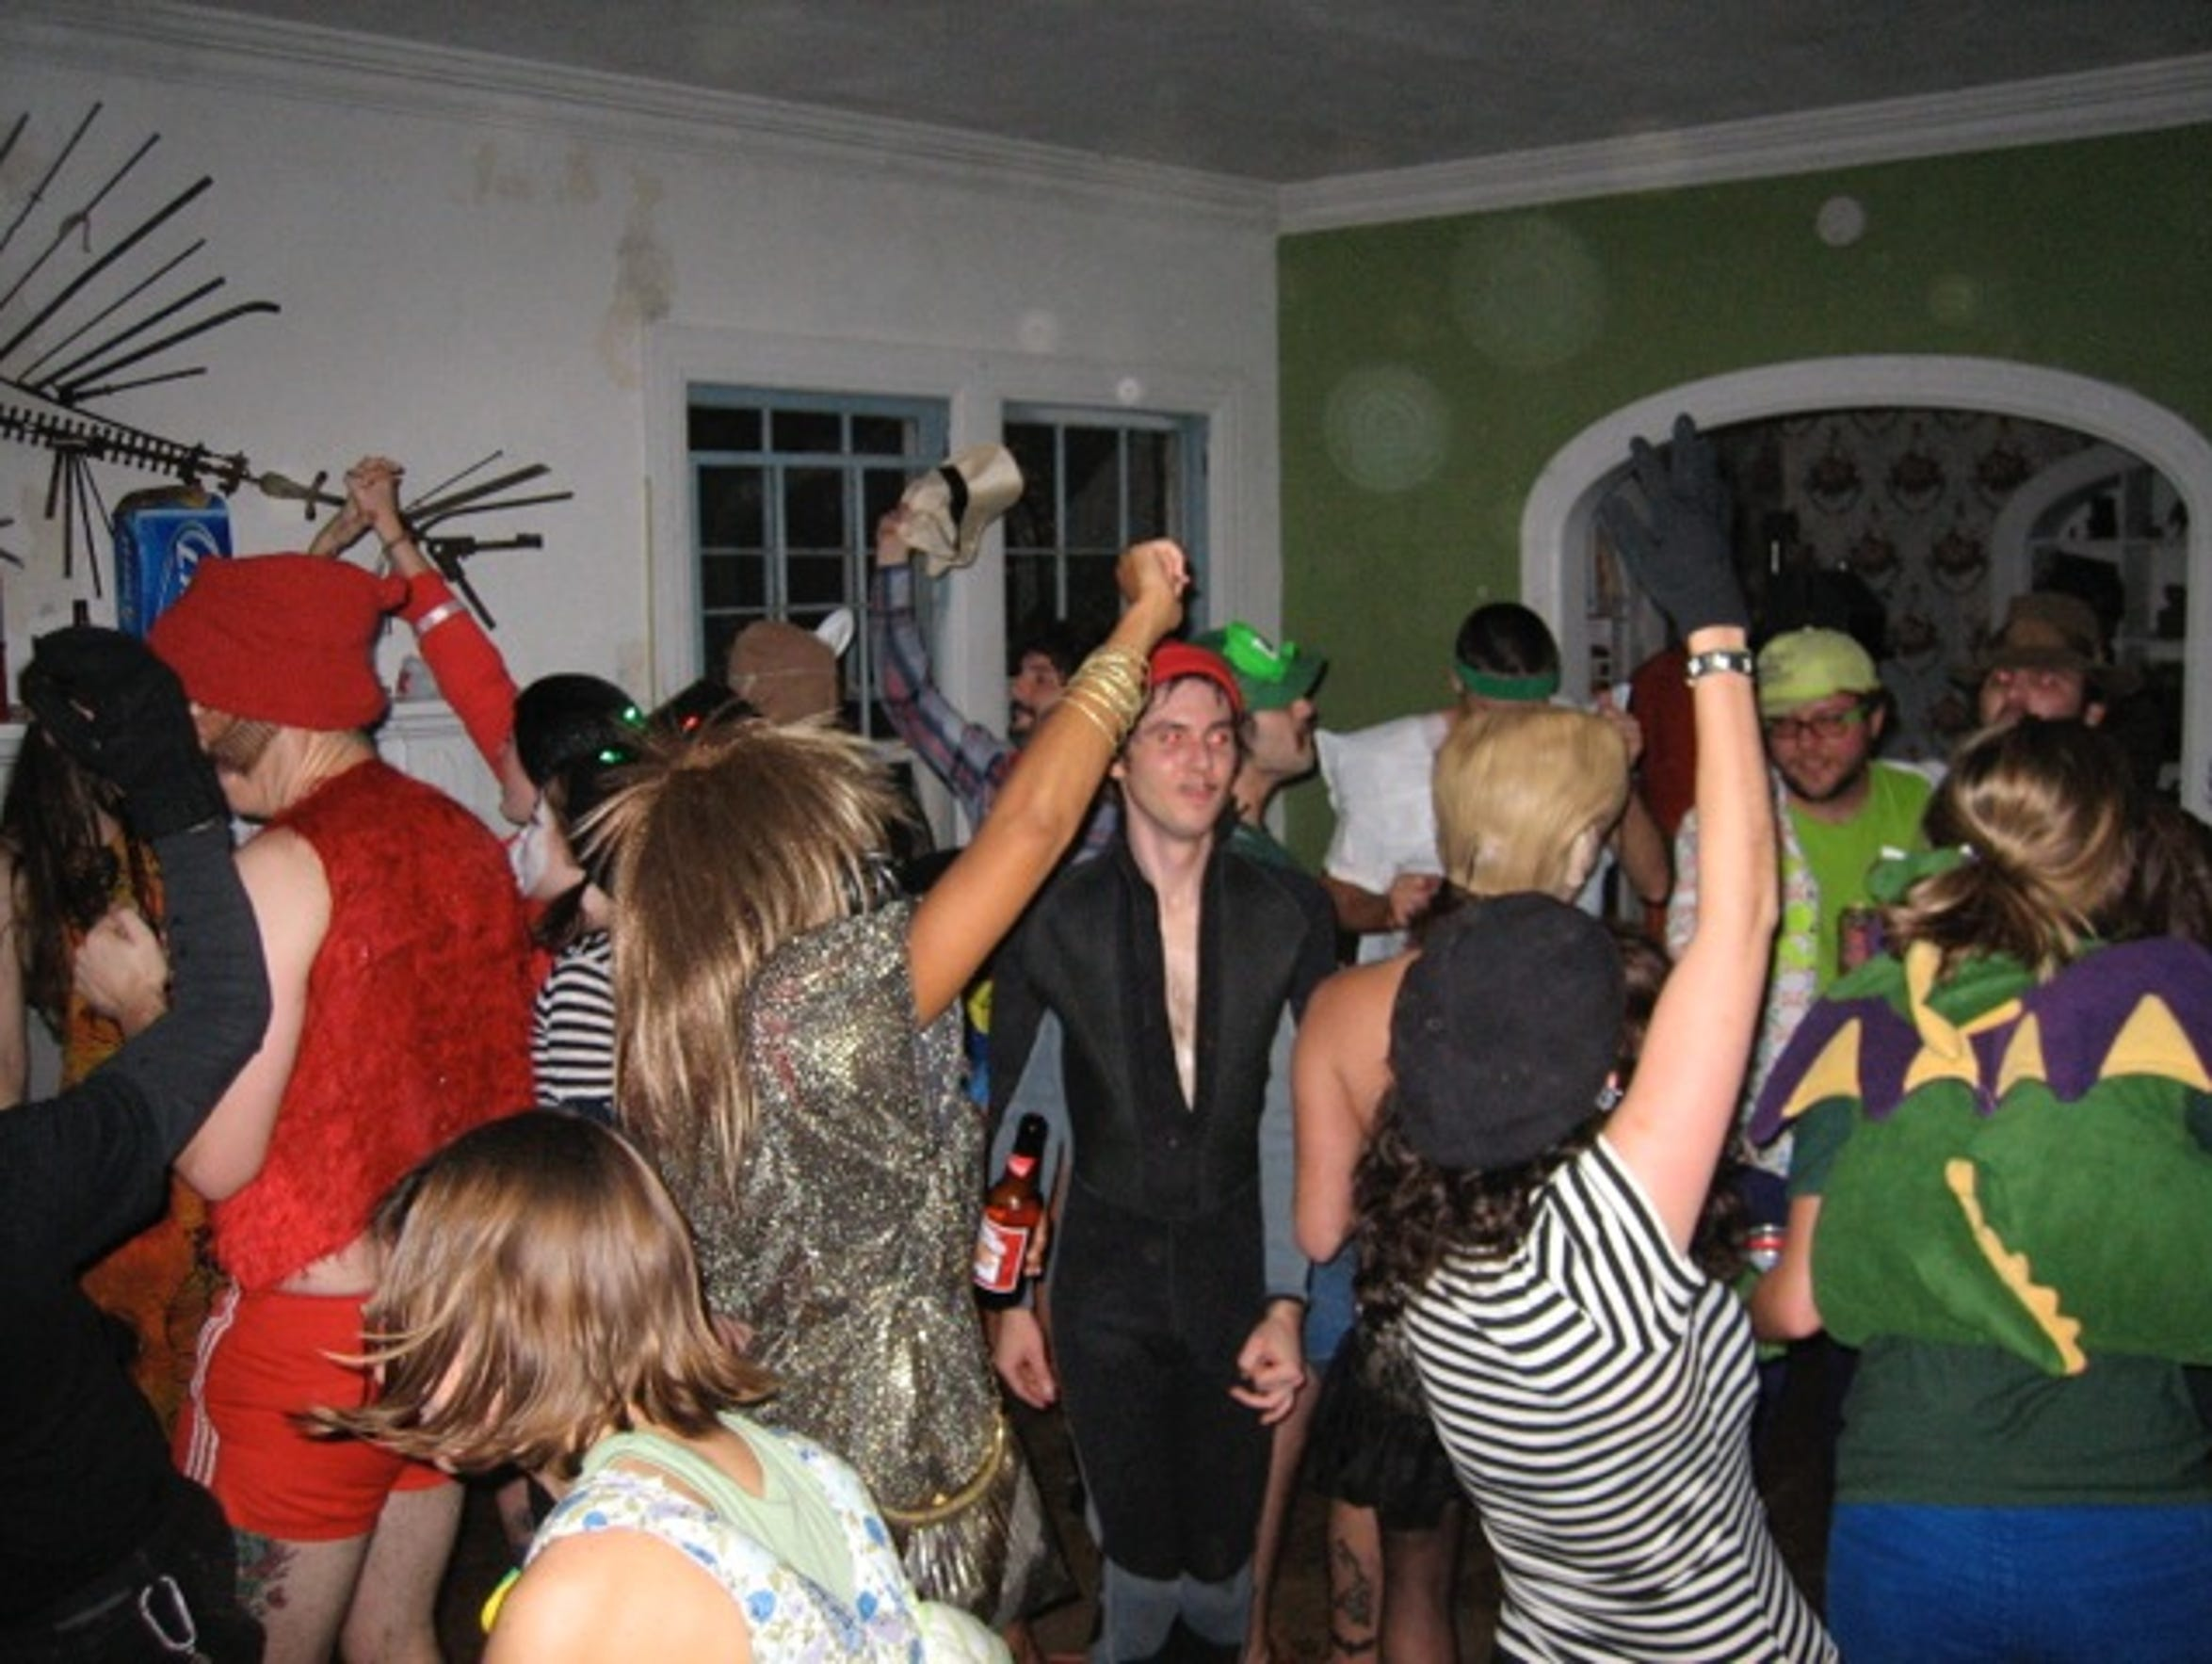 Party-goers flocked to Charles Mansion for epic parties